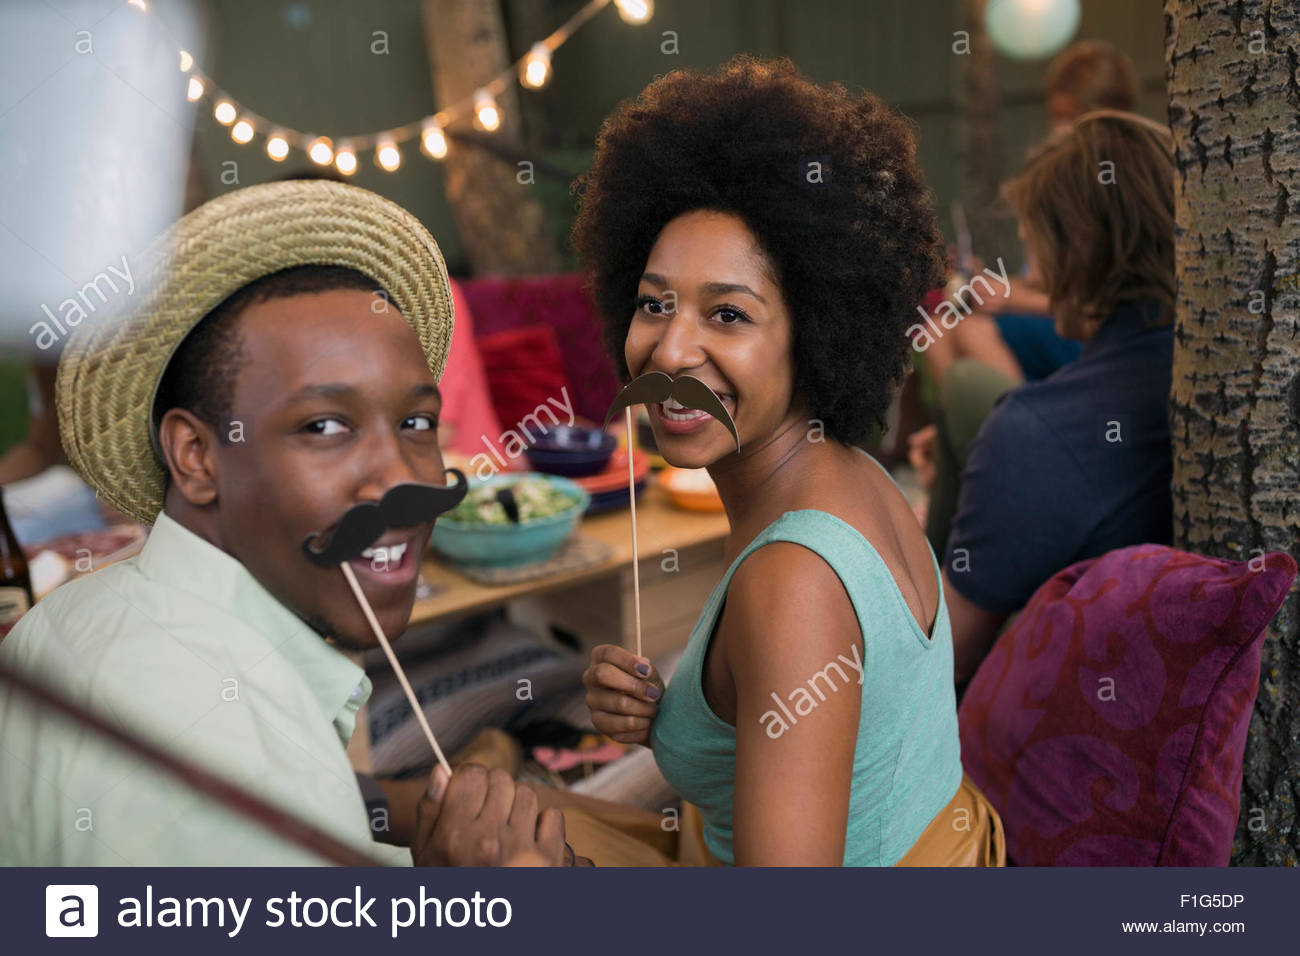 Portrait playful couple with fake mustaches on sticks - Stock Image